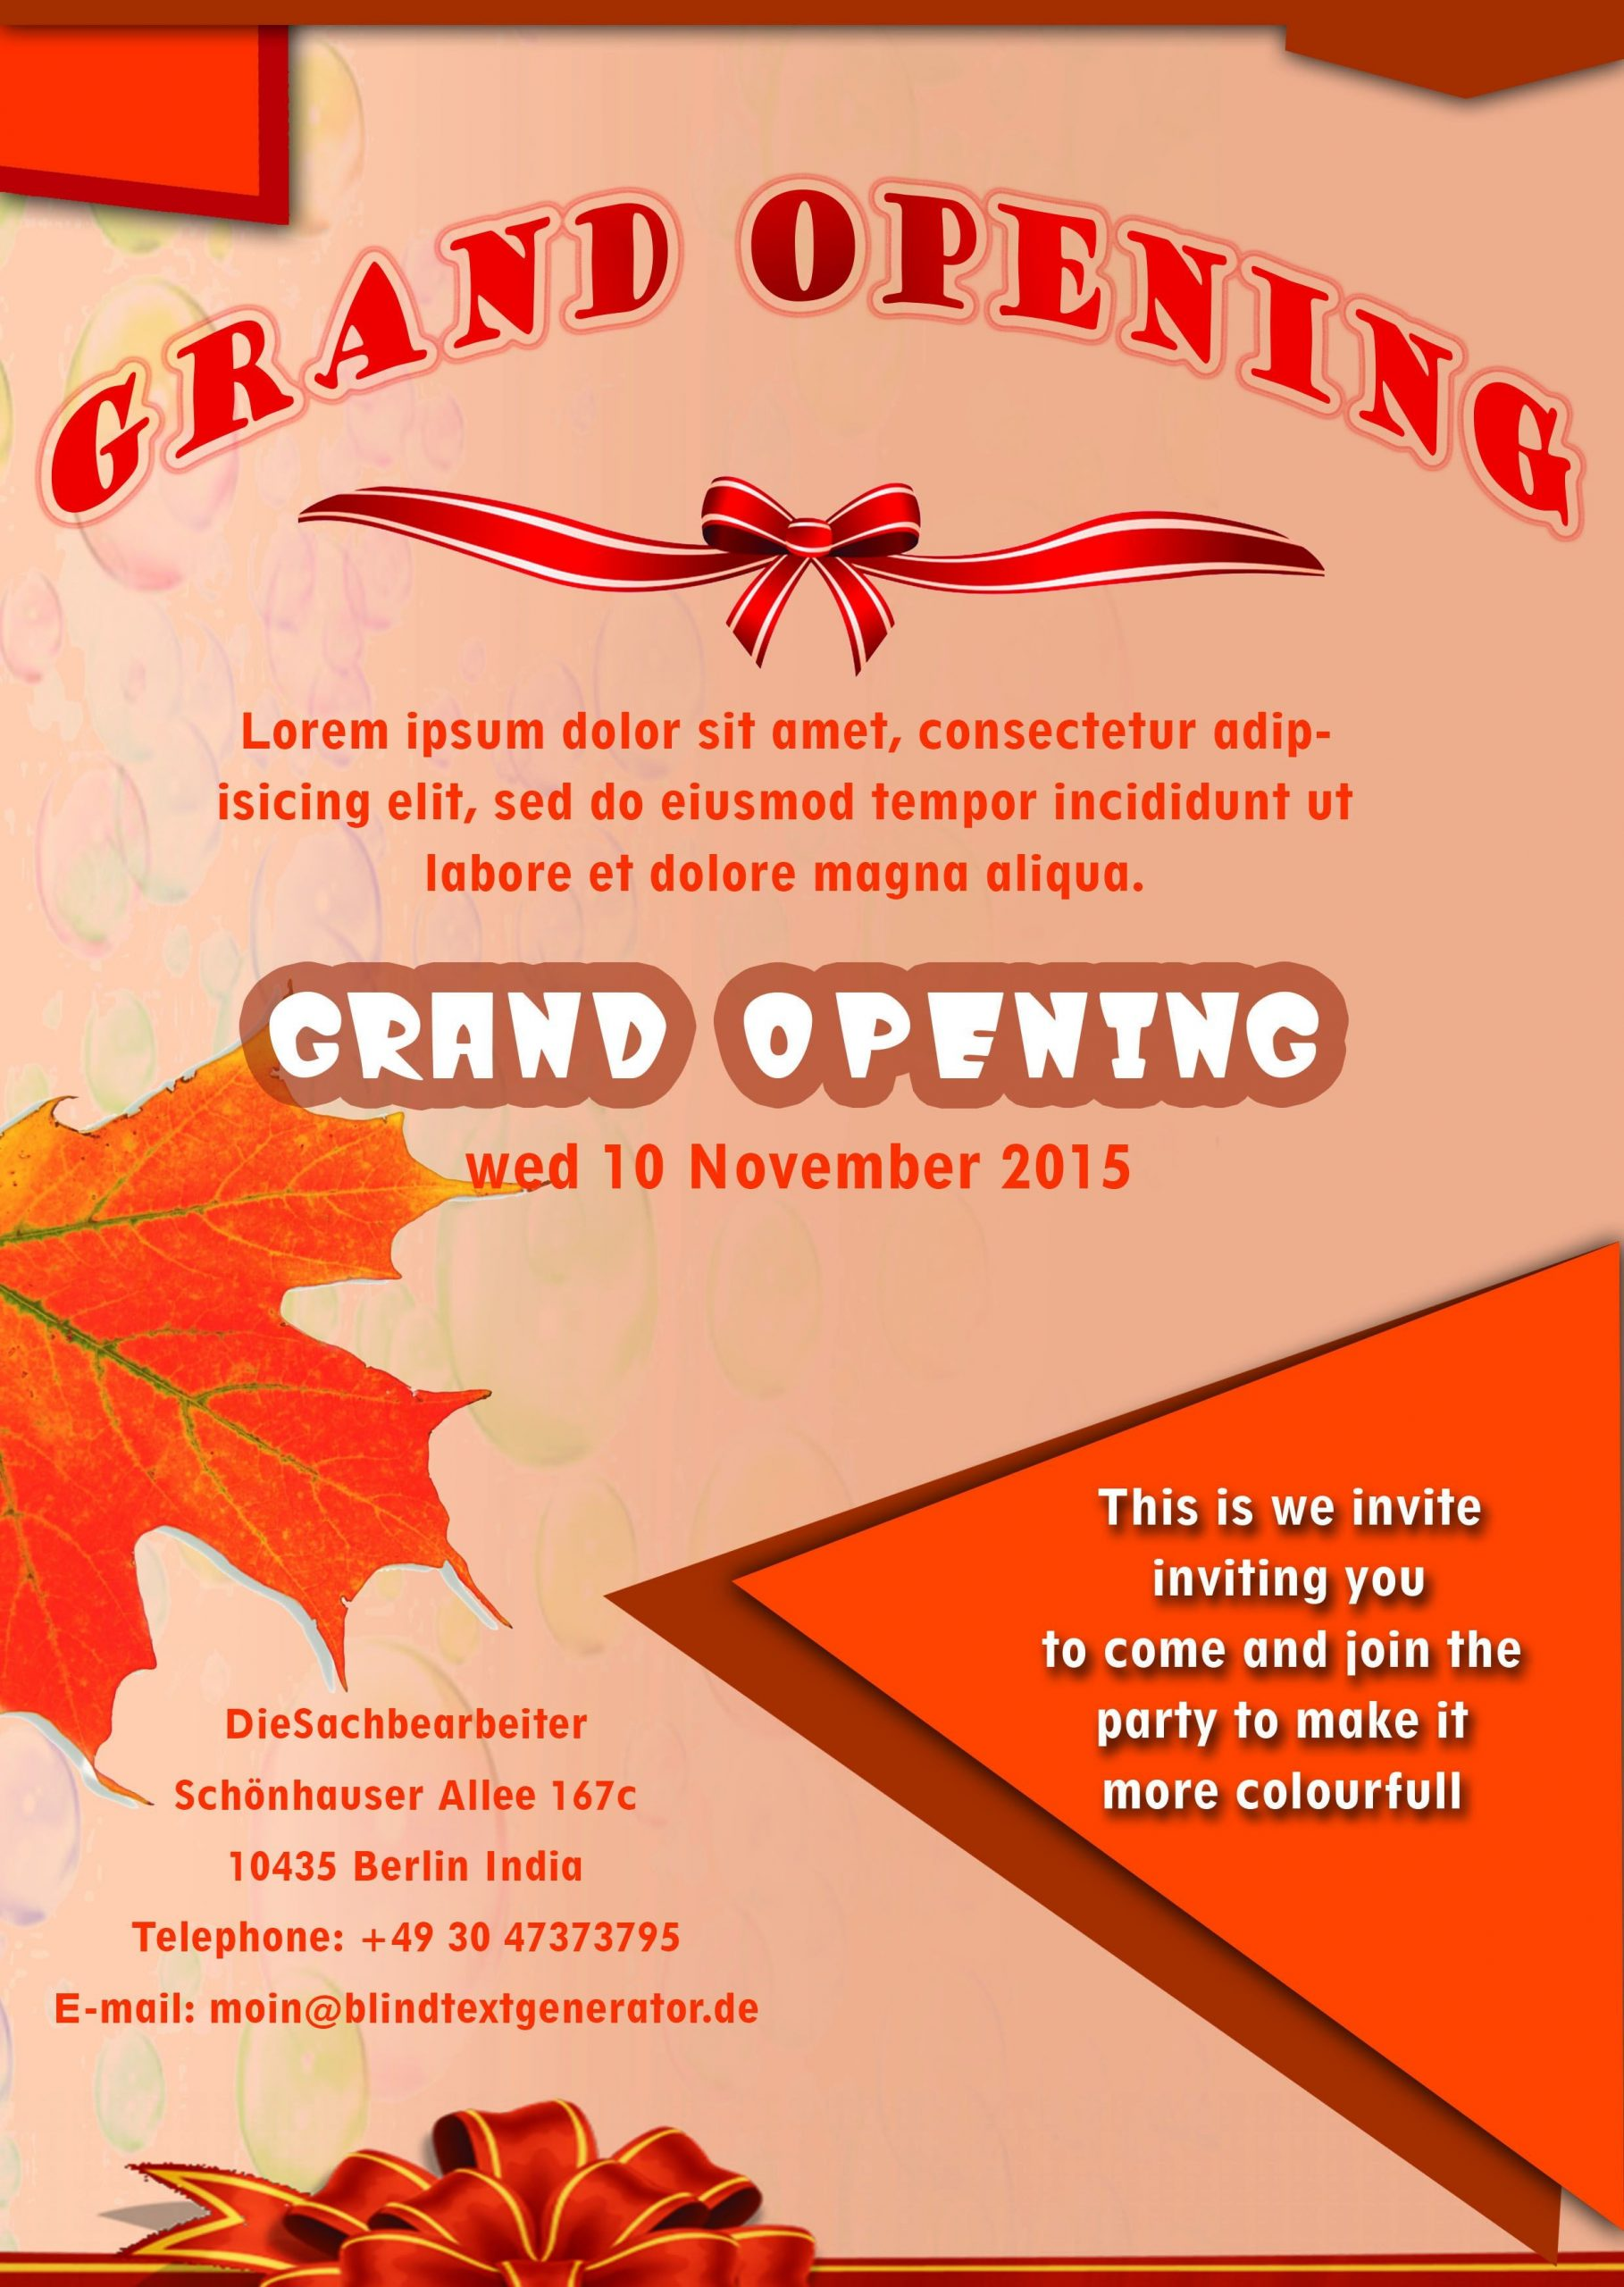 grand opening flyer template  20 Grand Opening Flyer Templates Free - Demplates - grand opening flyer template